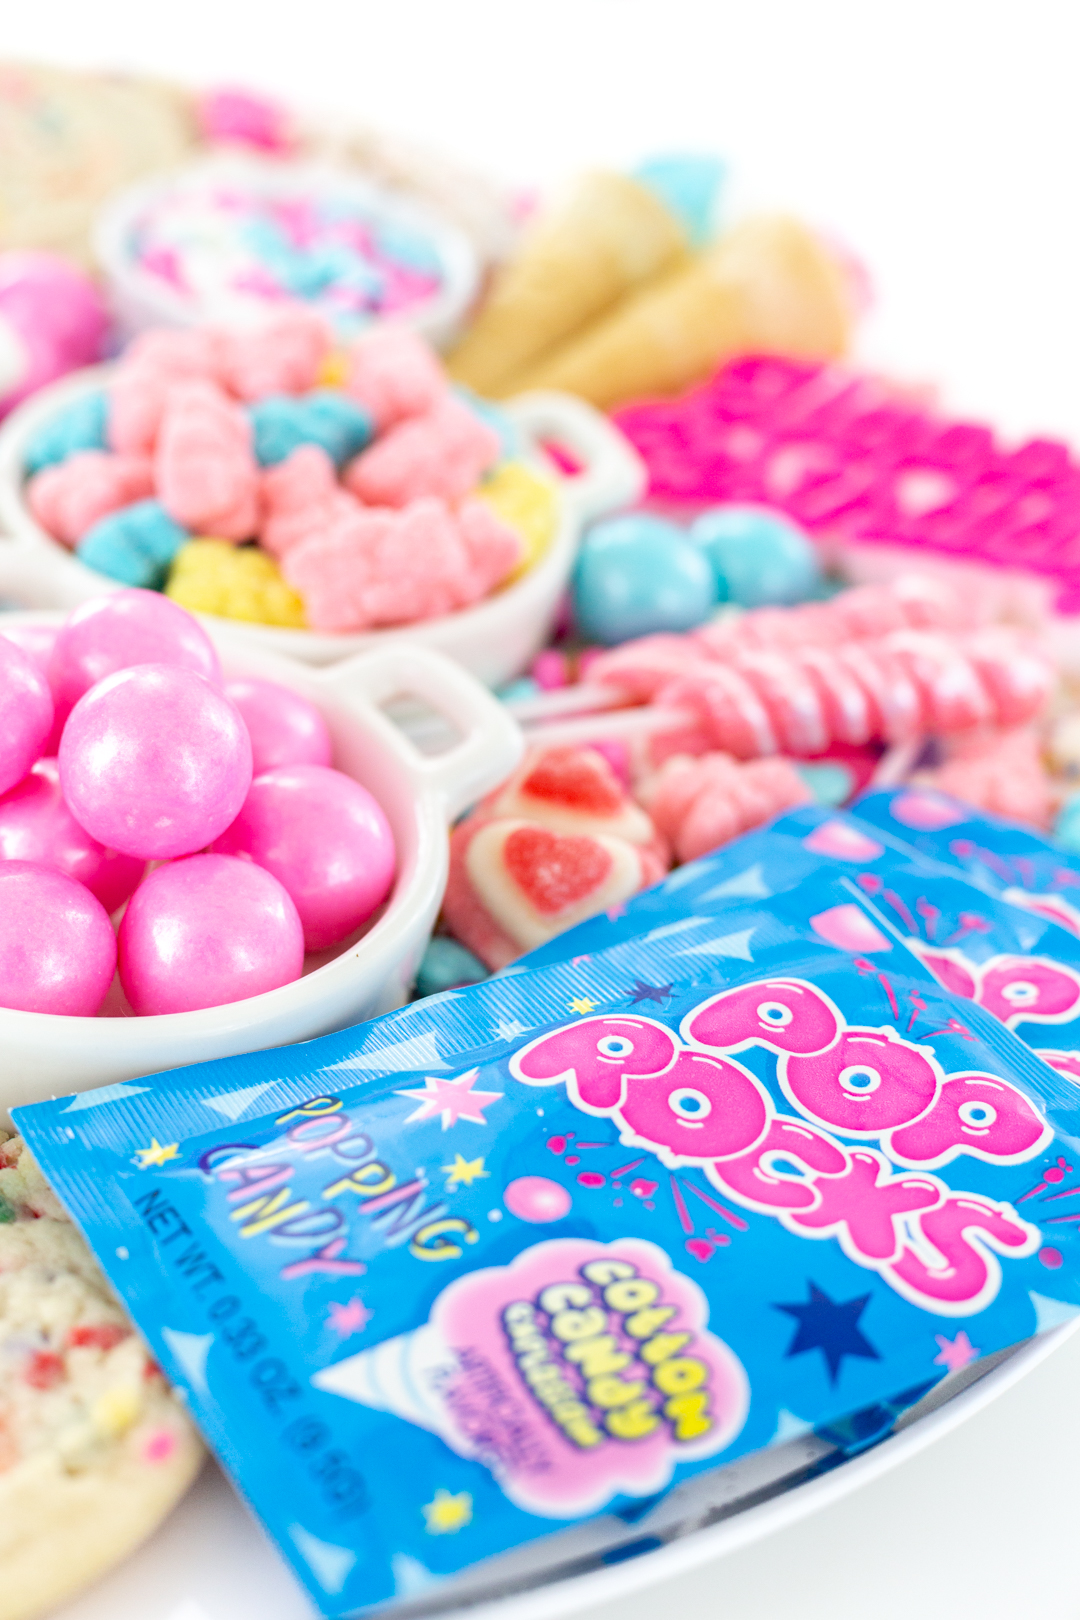 Pop Rocks and other pink and blue themed candies and treats.